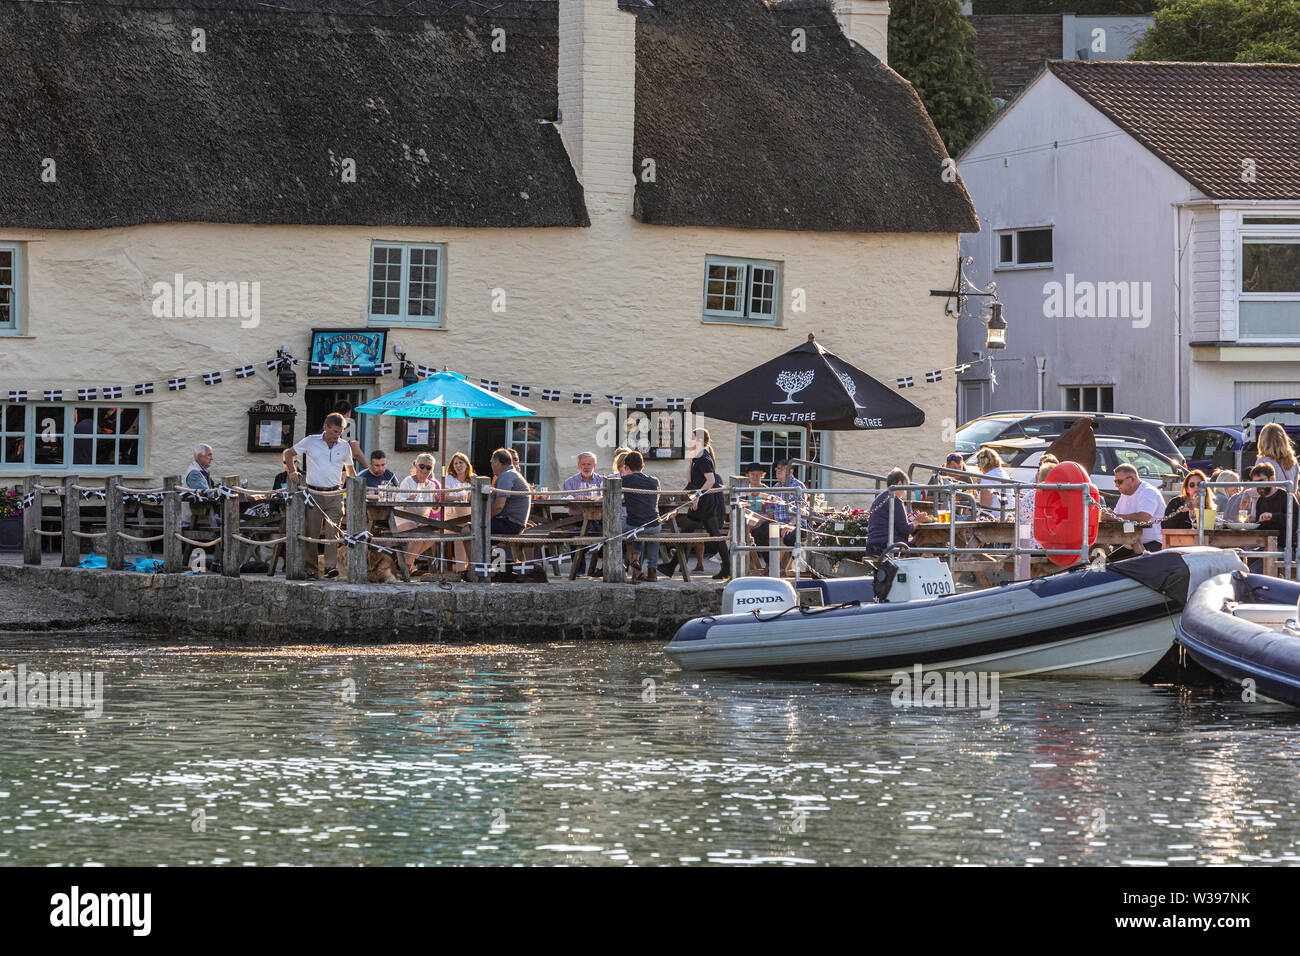 Pandora Inn, Restronguet Creek, Carrick Roads, Falmouth.  Too popular for me!  Photographed from the river. - Stock Image